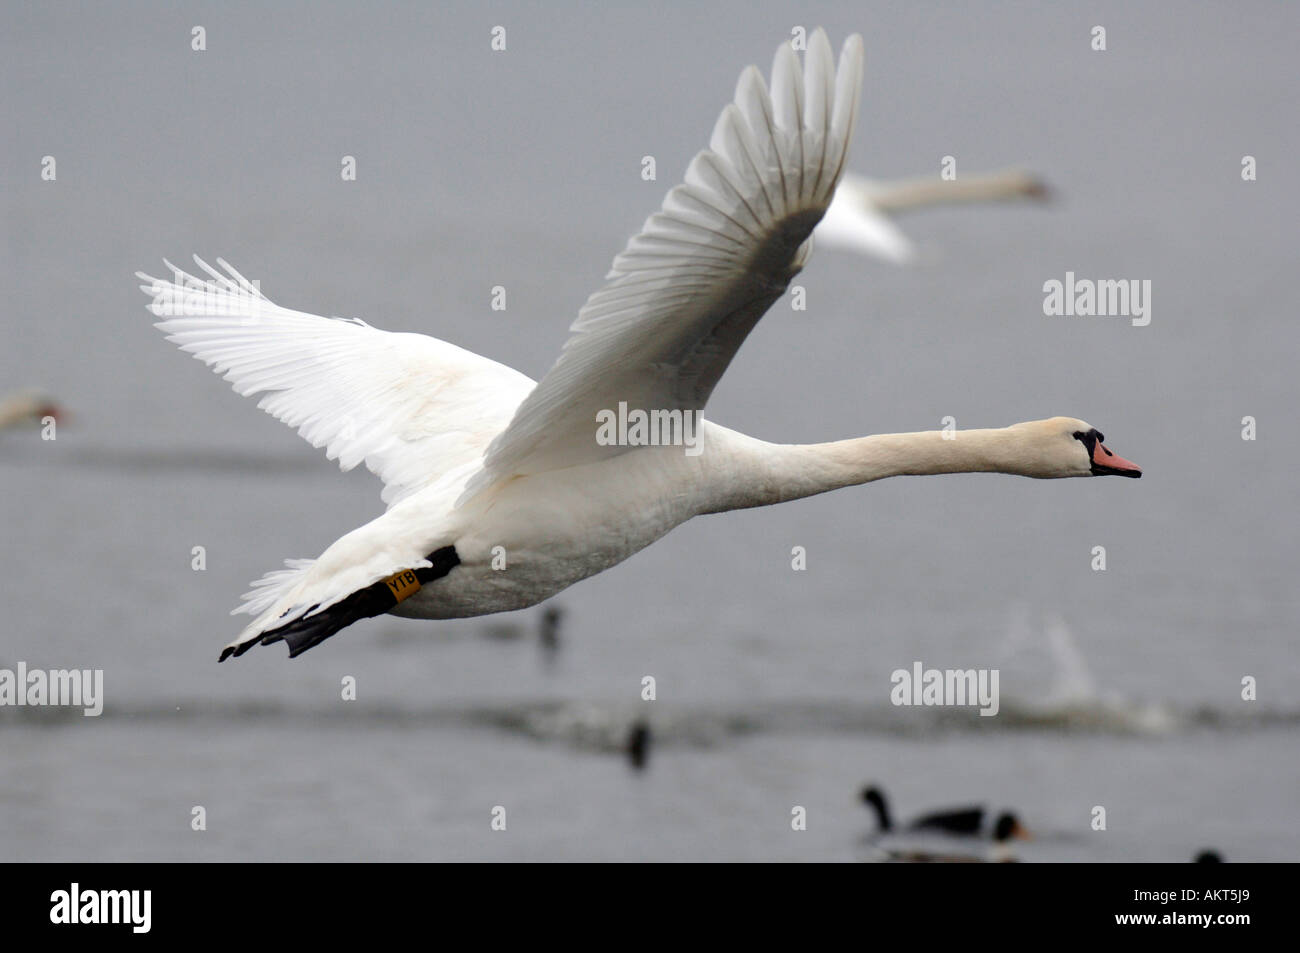 Swans at Abbotsbury swannery in Dorset - Stock Image